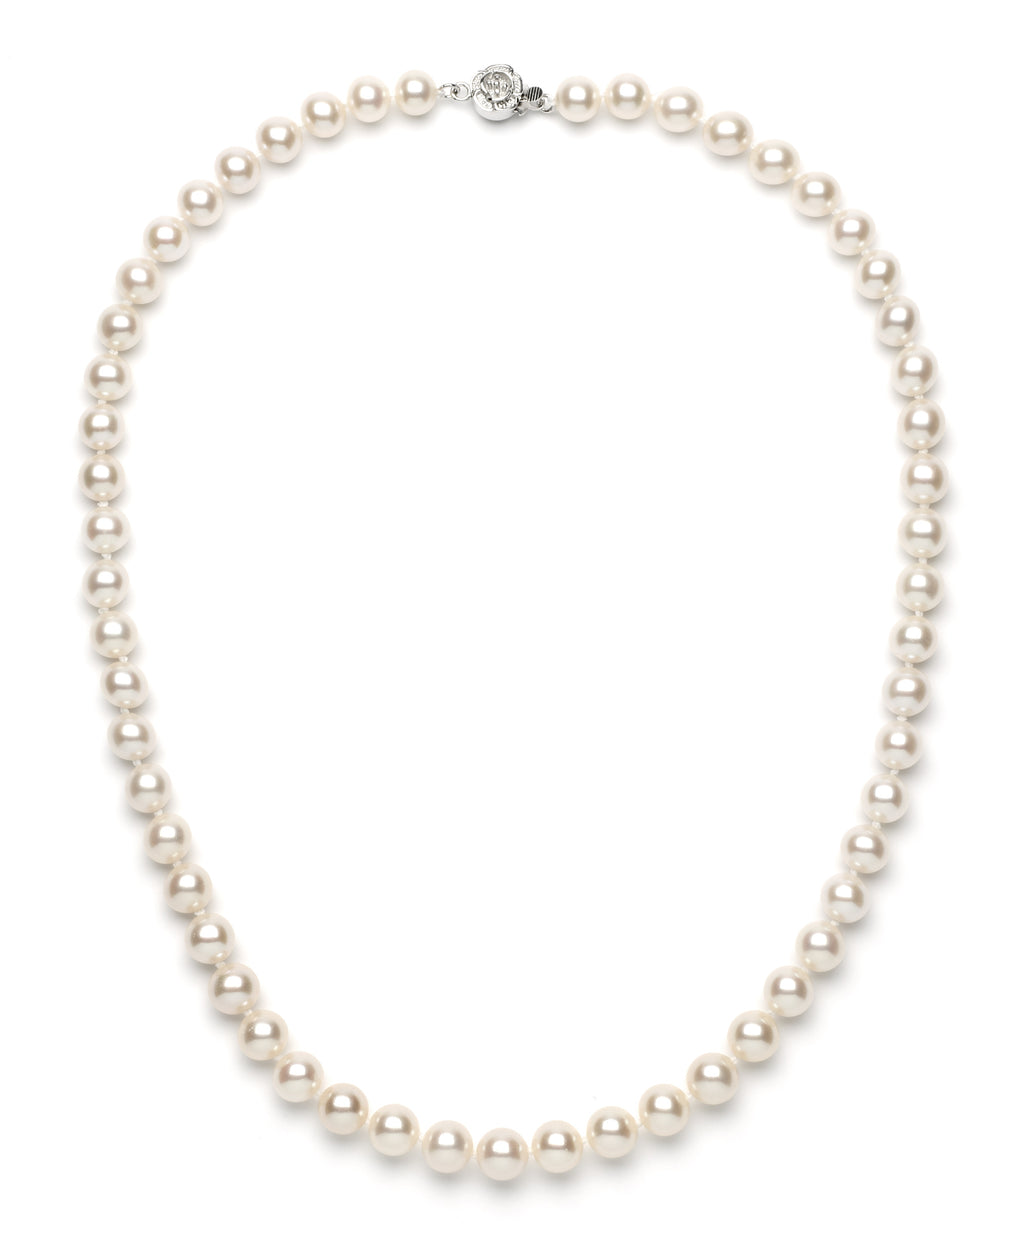 8.0-9.0 mm White Freshwater Pearl Necklace